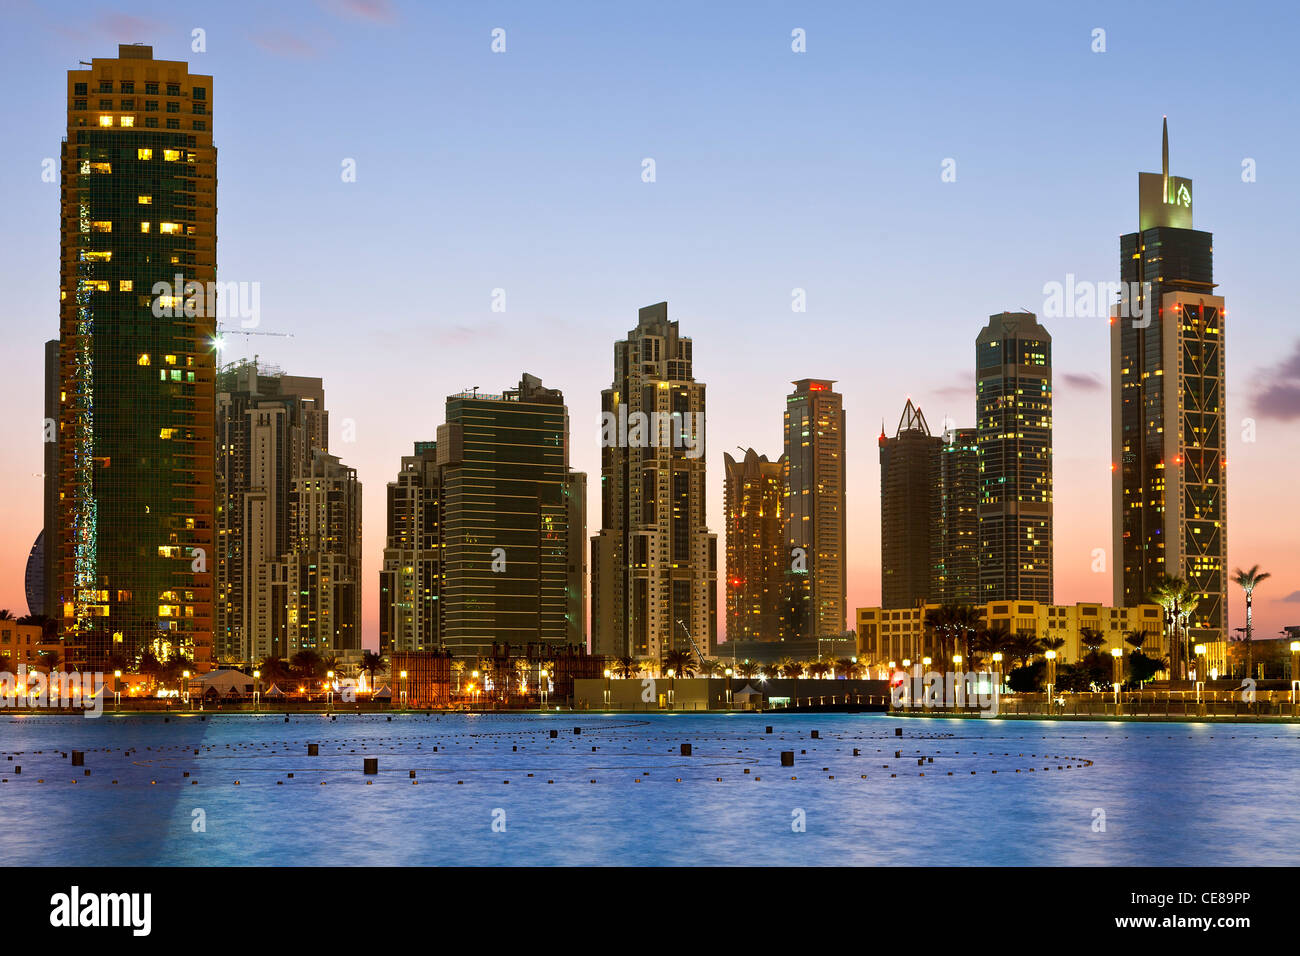 Dubai, gratte-ciel de nuit Photo Stock